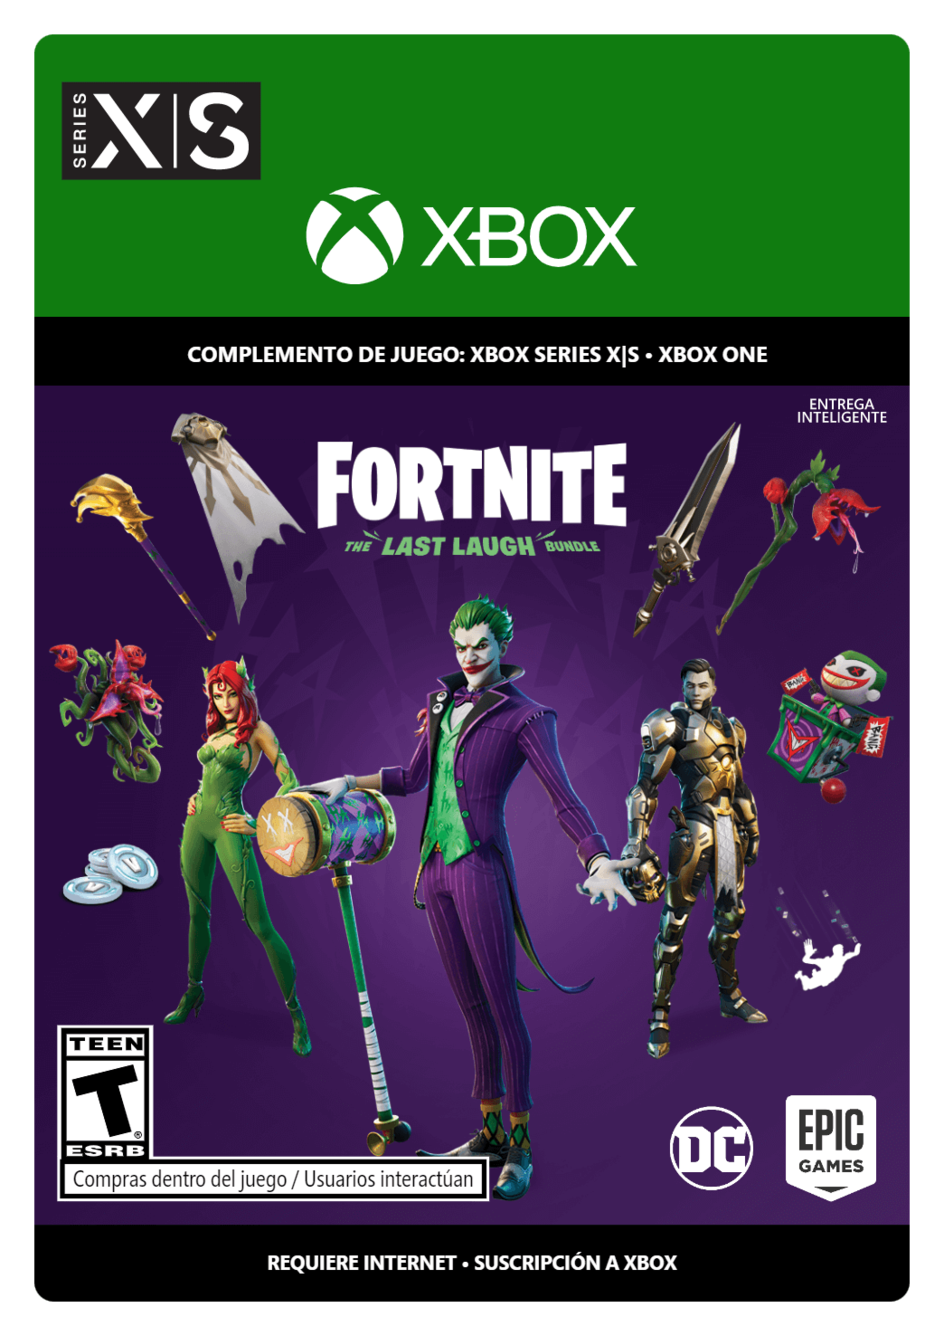 Fortnite: The Last Laugh Bundle La Última Risa DLC